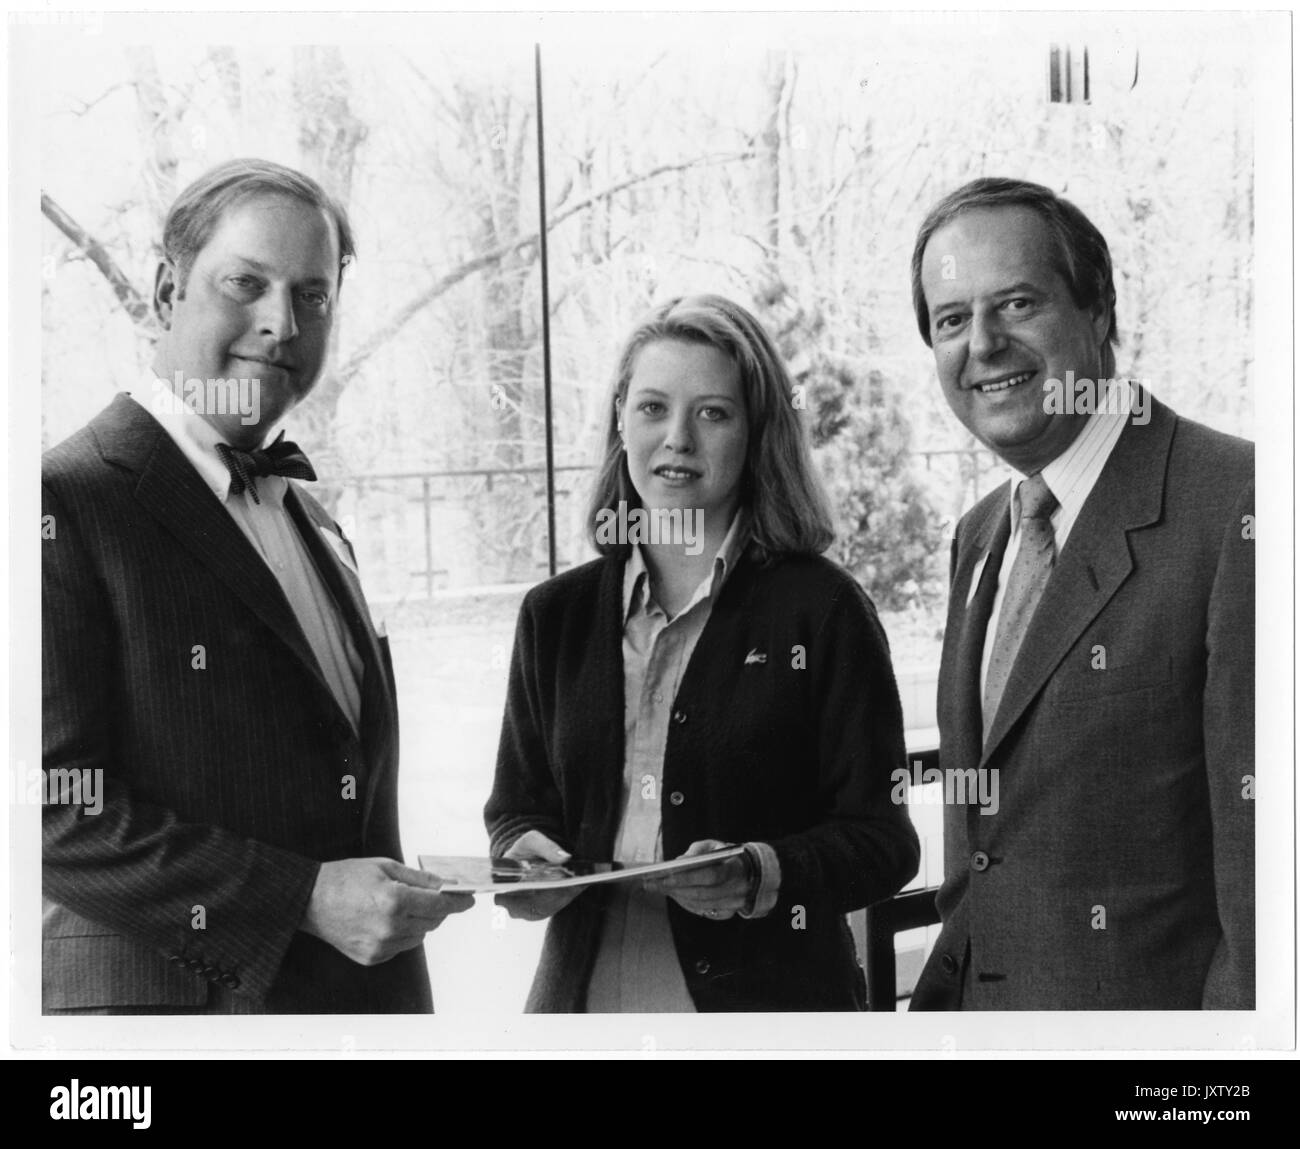 Beneficial-Hodson Merit Scholars, Steven Muller, Finn MW Casperson, An unidentified student is being presented in the Glass Pavilion with the Beneficial Hodson Merit Scholars Award by Finn MW Casperson, 1984. - Stock Image